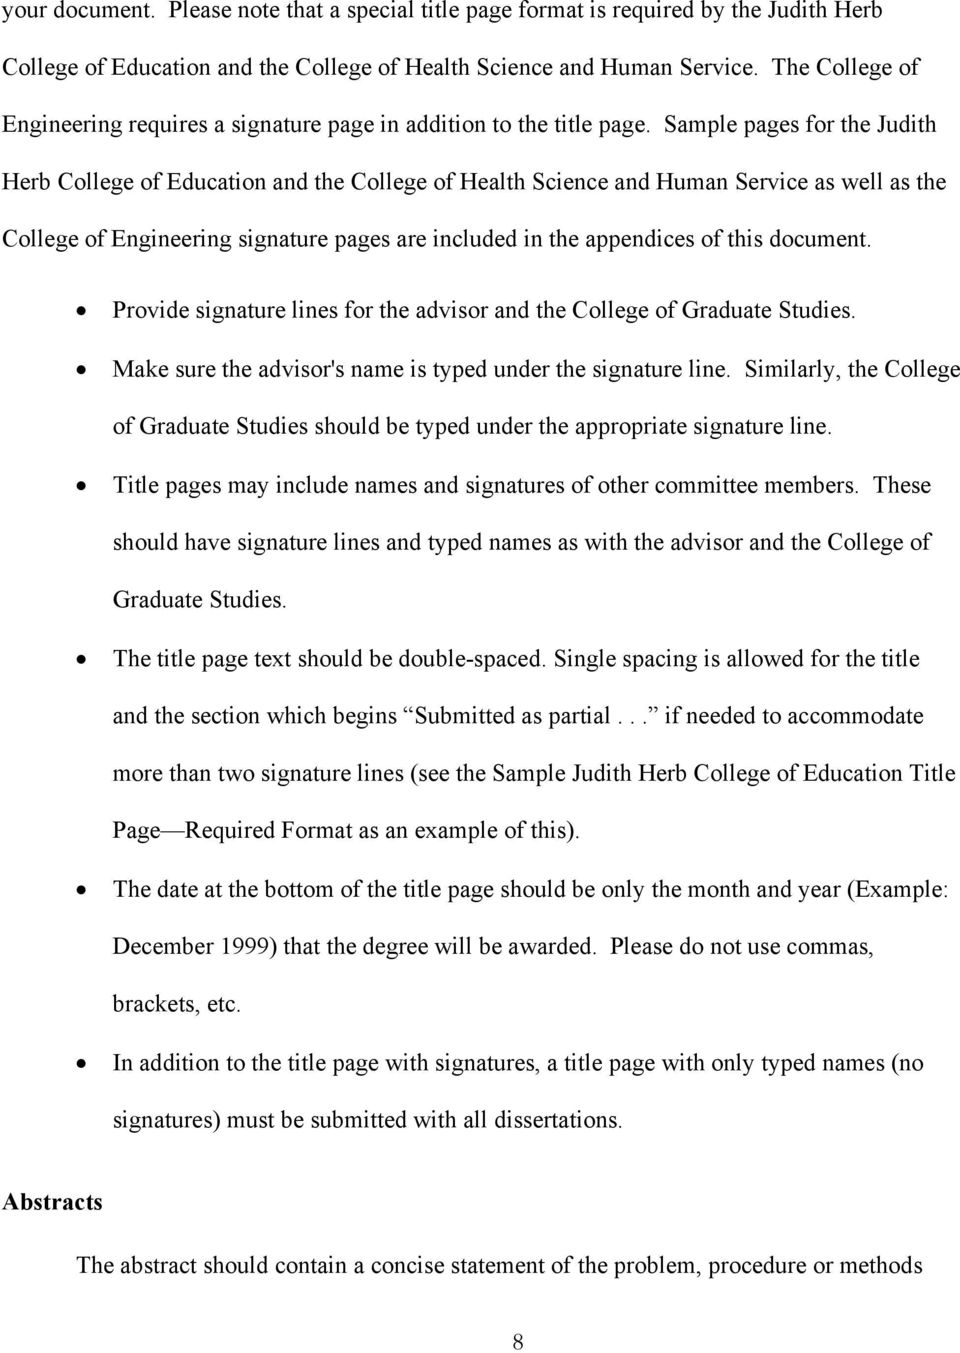 Sample pages for the Judith Herb College of Education and the College of Health Science and Human Service as well as the College of Engineering signature pages are included in the appendices of this